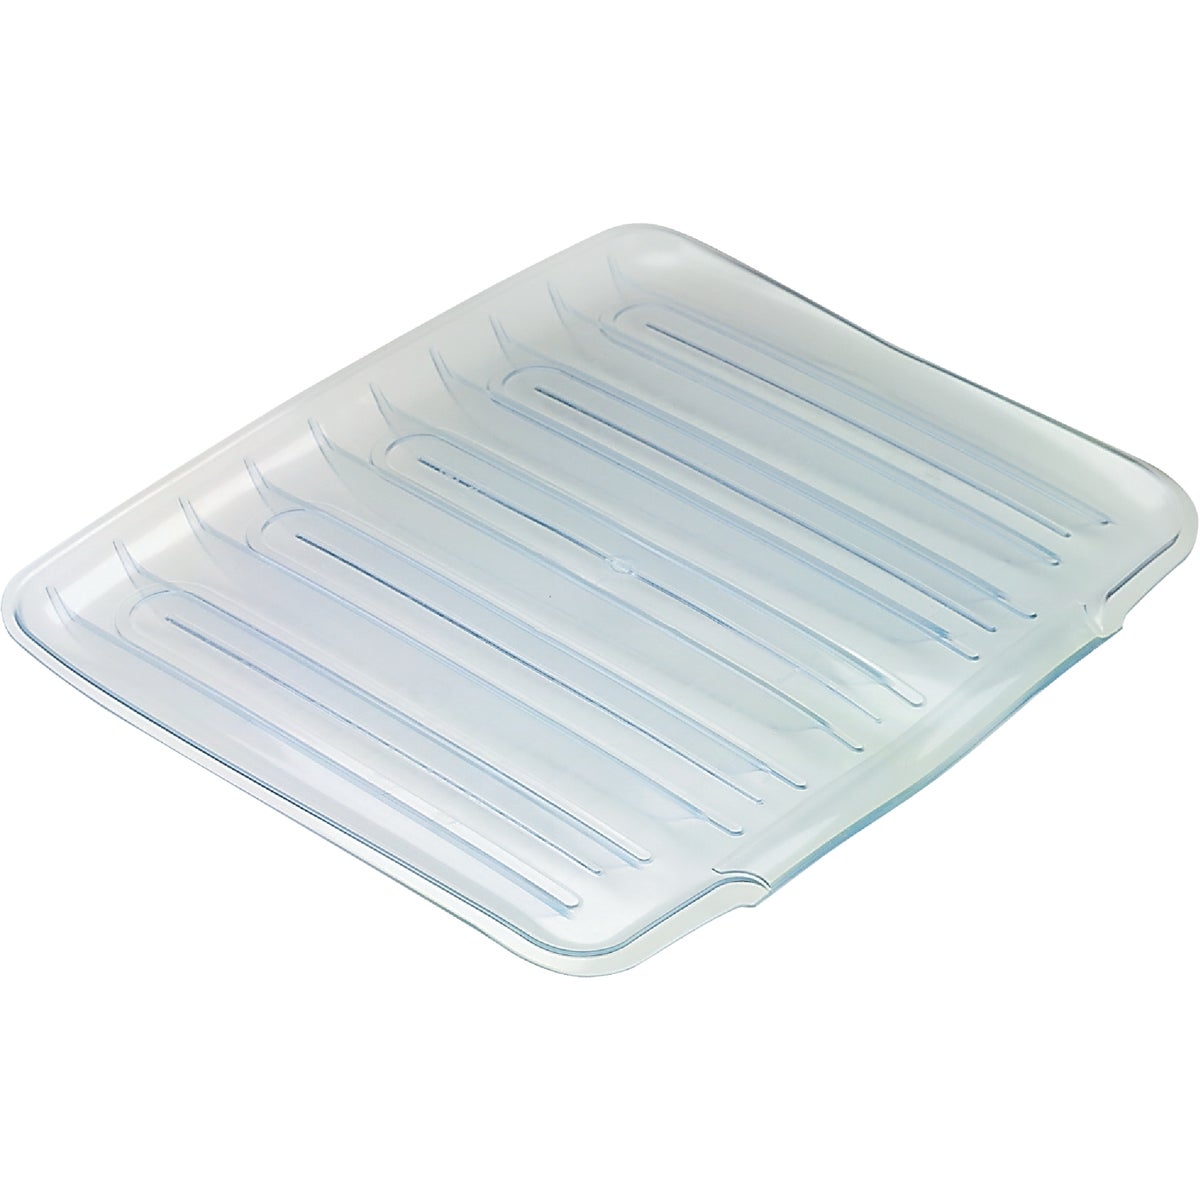 SMALL CLEAR DRAINER TRAY - 1180MACLR by Rubbermaid Home